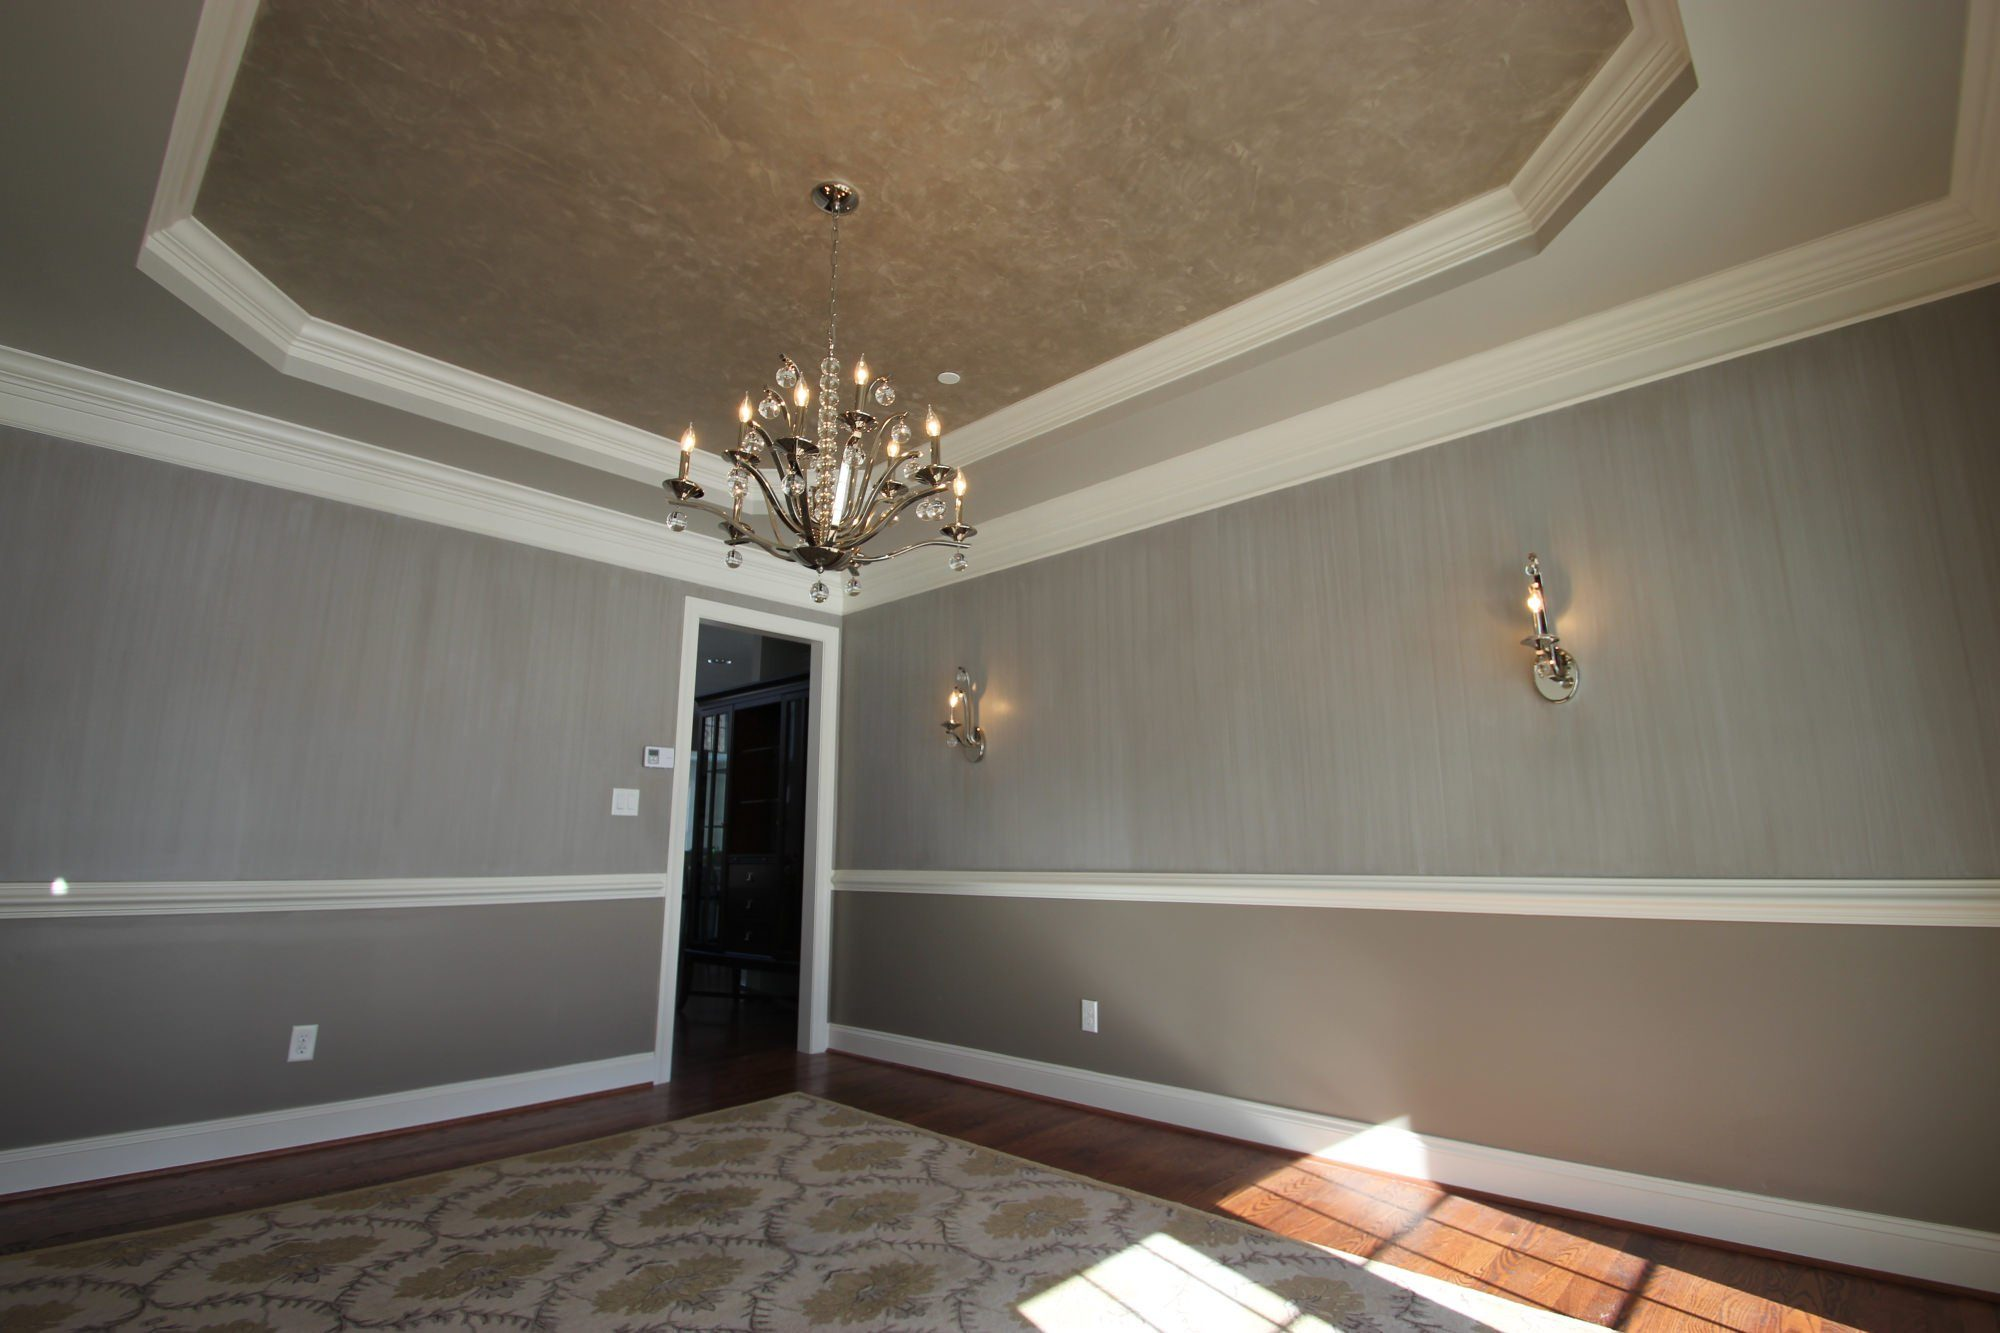 ceiling-paint-treatments-wow-afp-interiors_878202-5849789